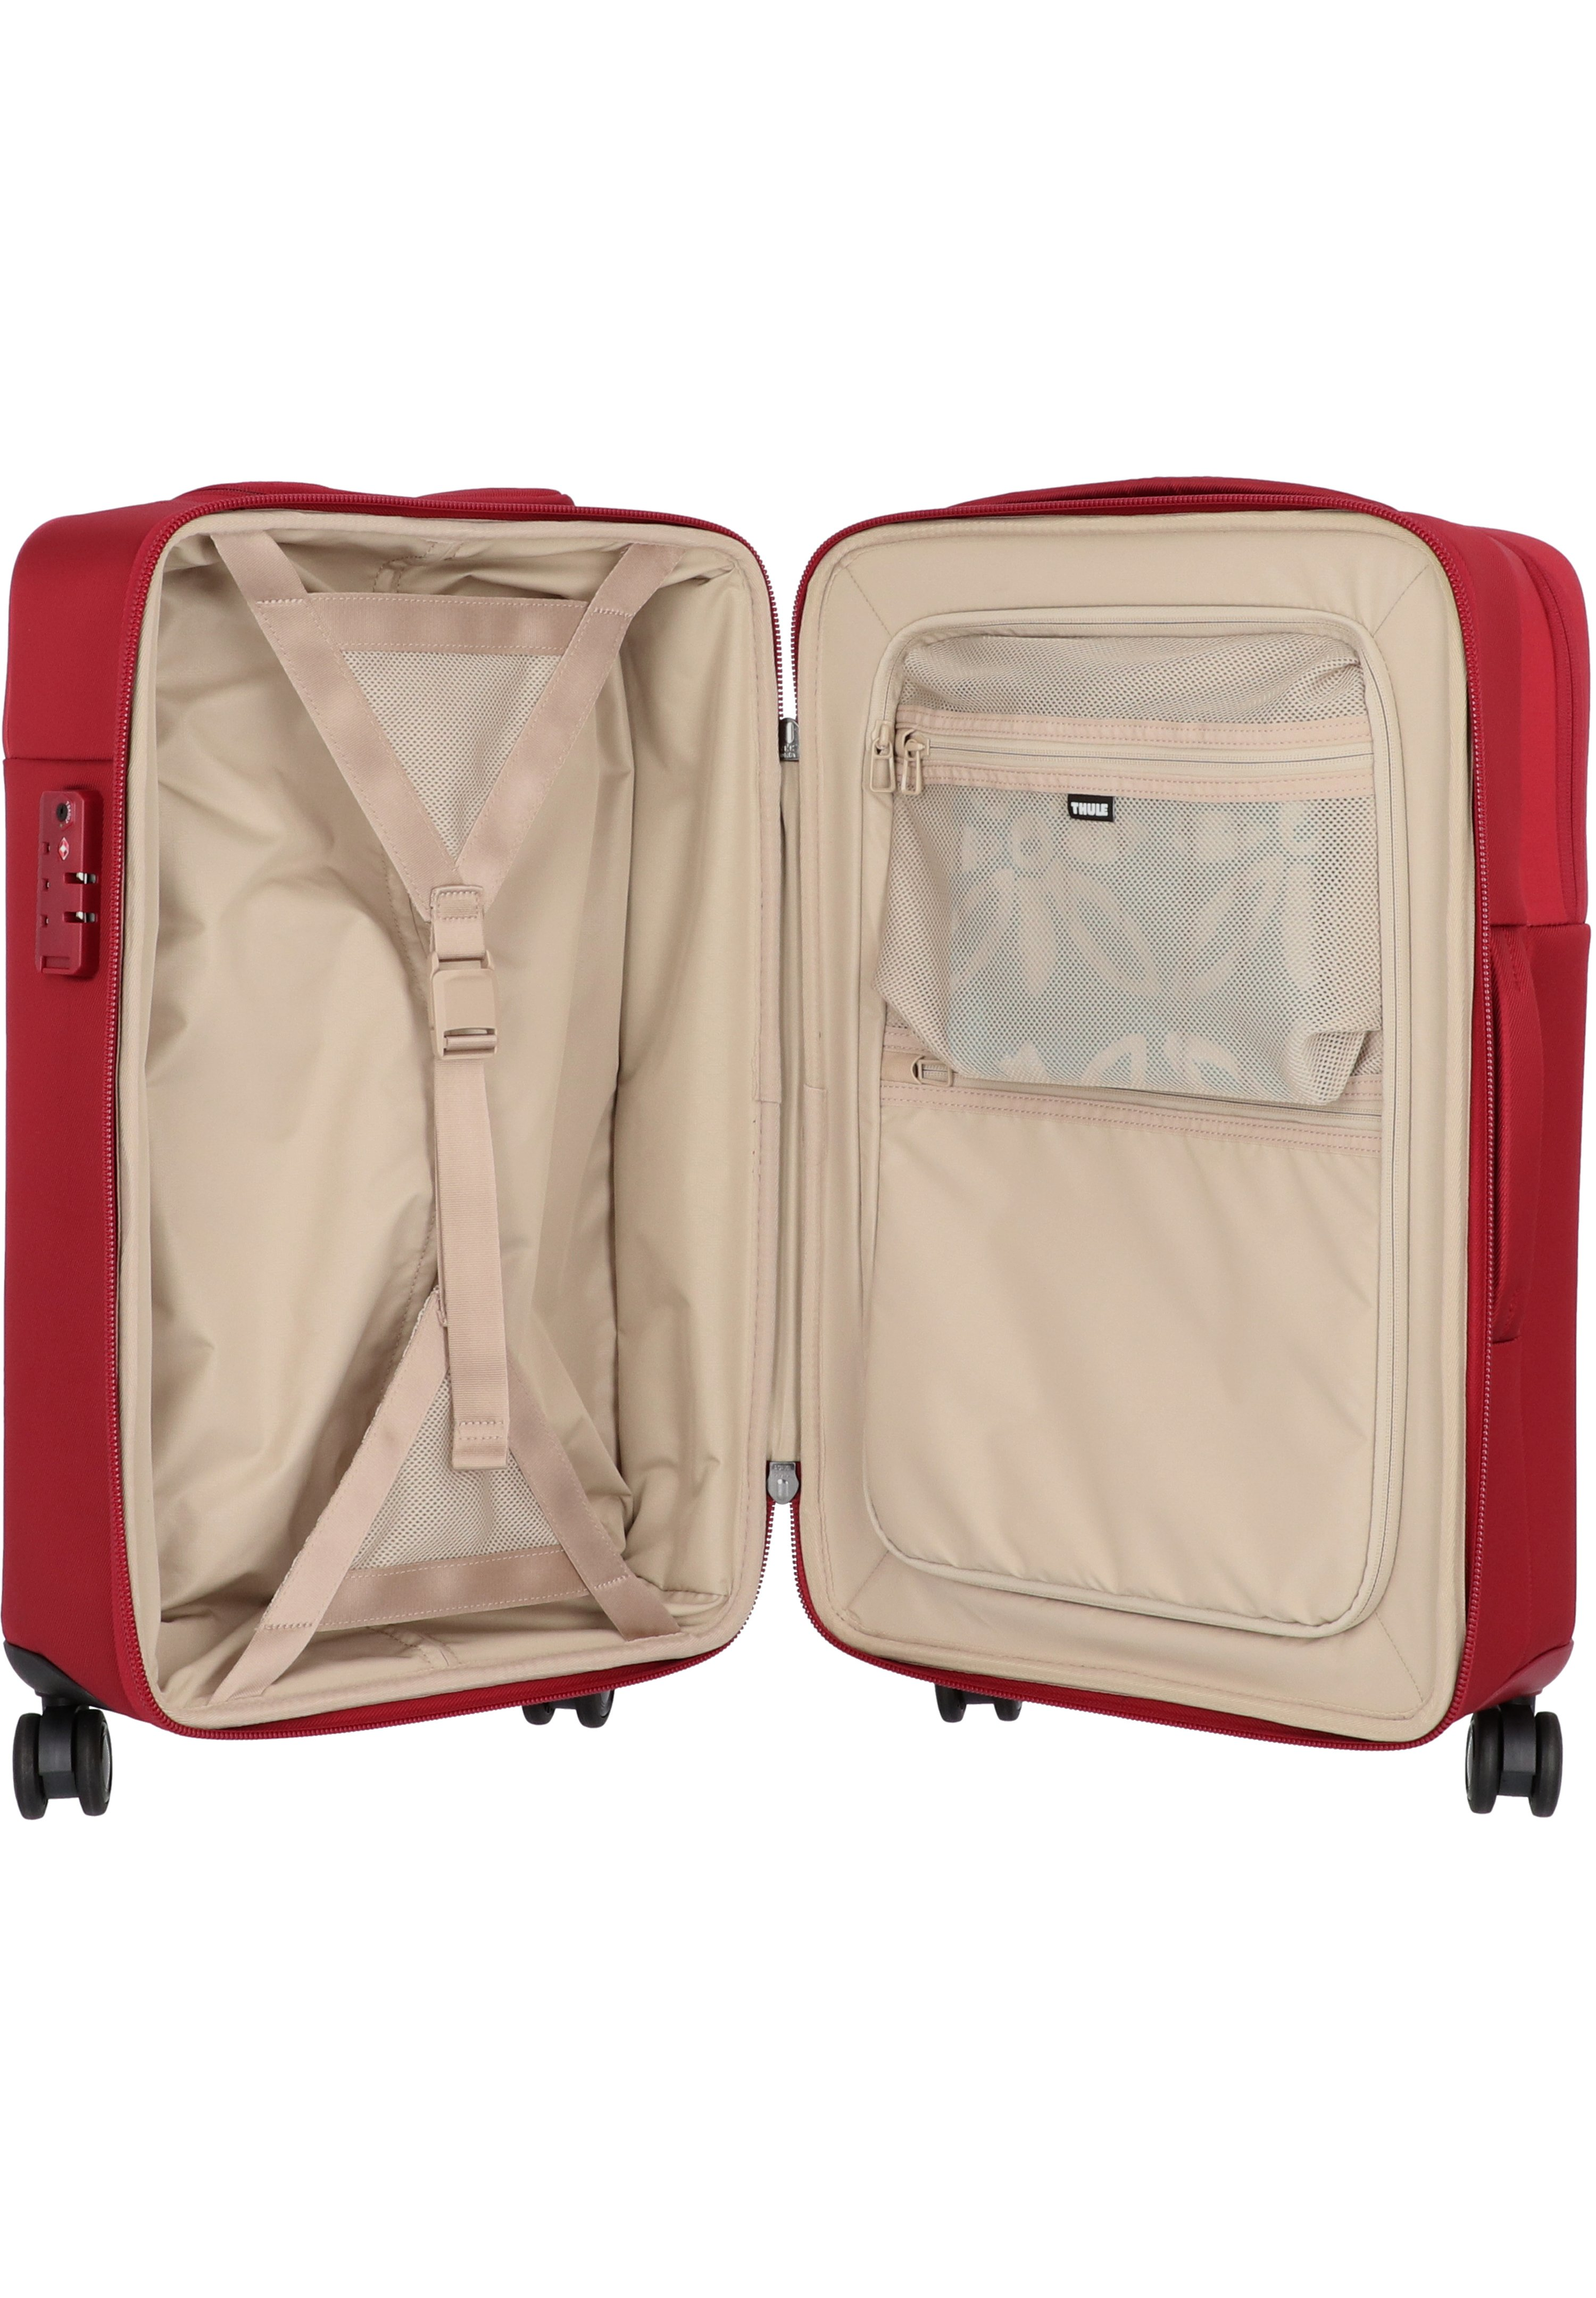 Thule Trolley - rio red/rot - Herrentaschen SIW0p